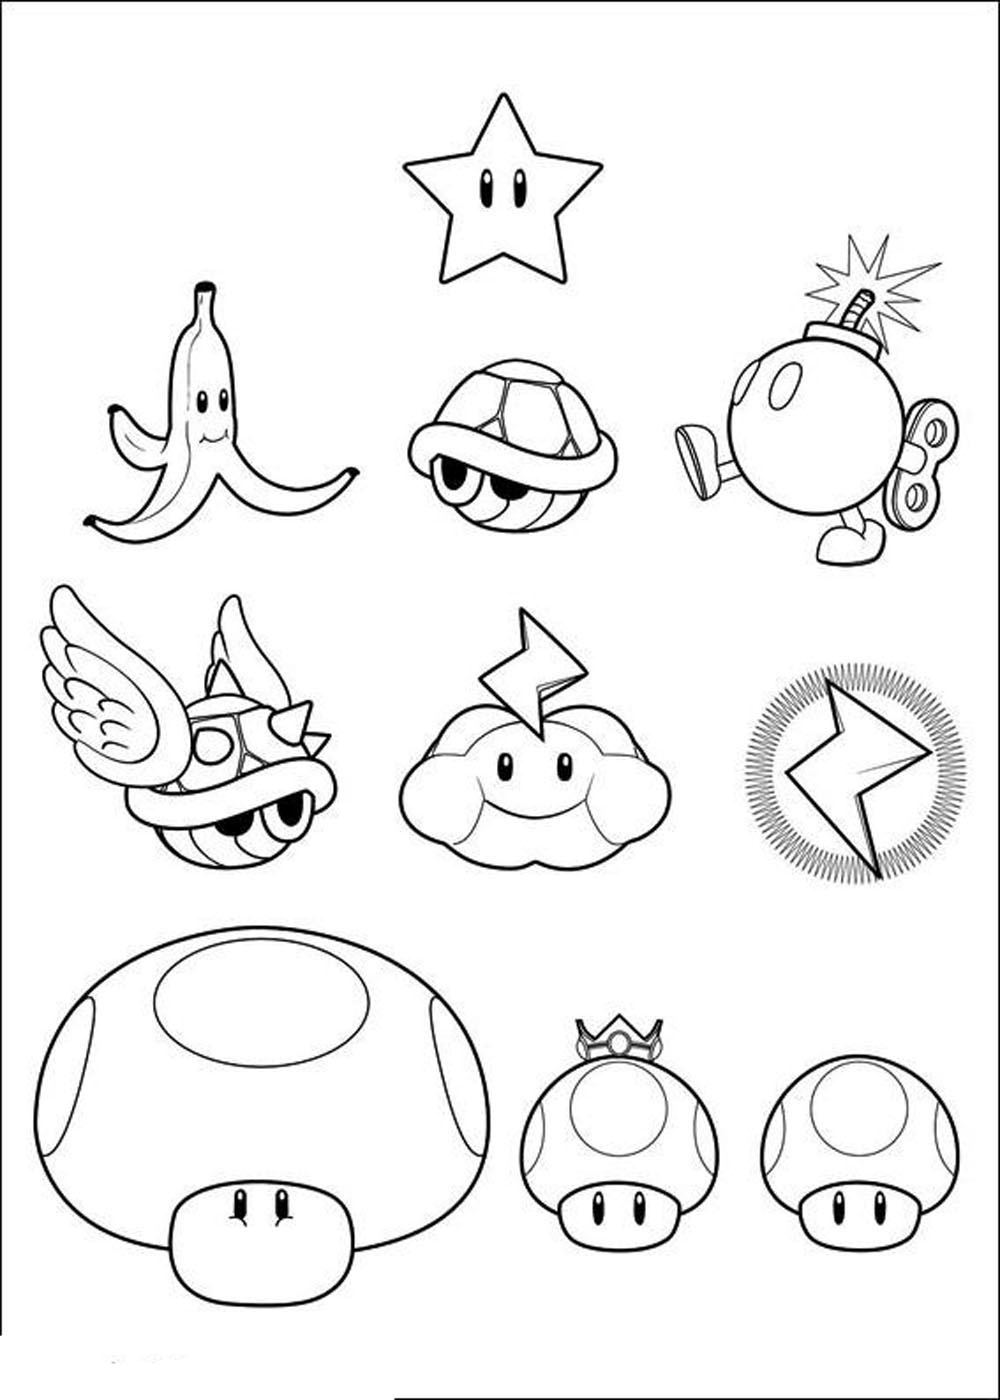 free printable mario coloring pages mario coloring pages themes best apps for kids mario coloring free pages printable